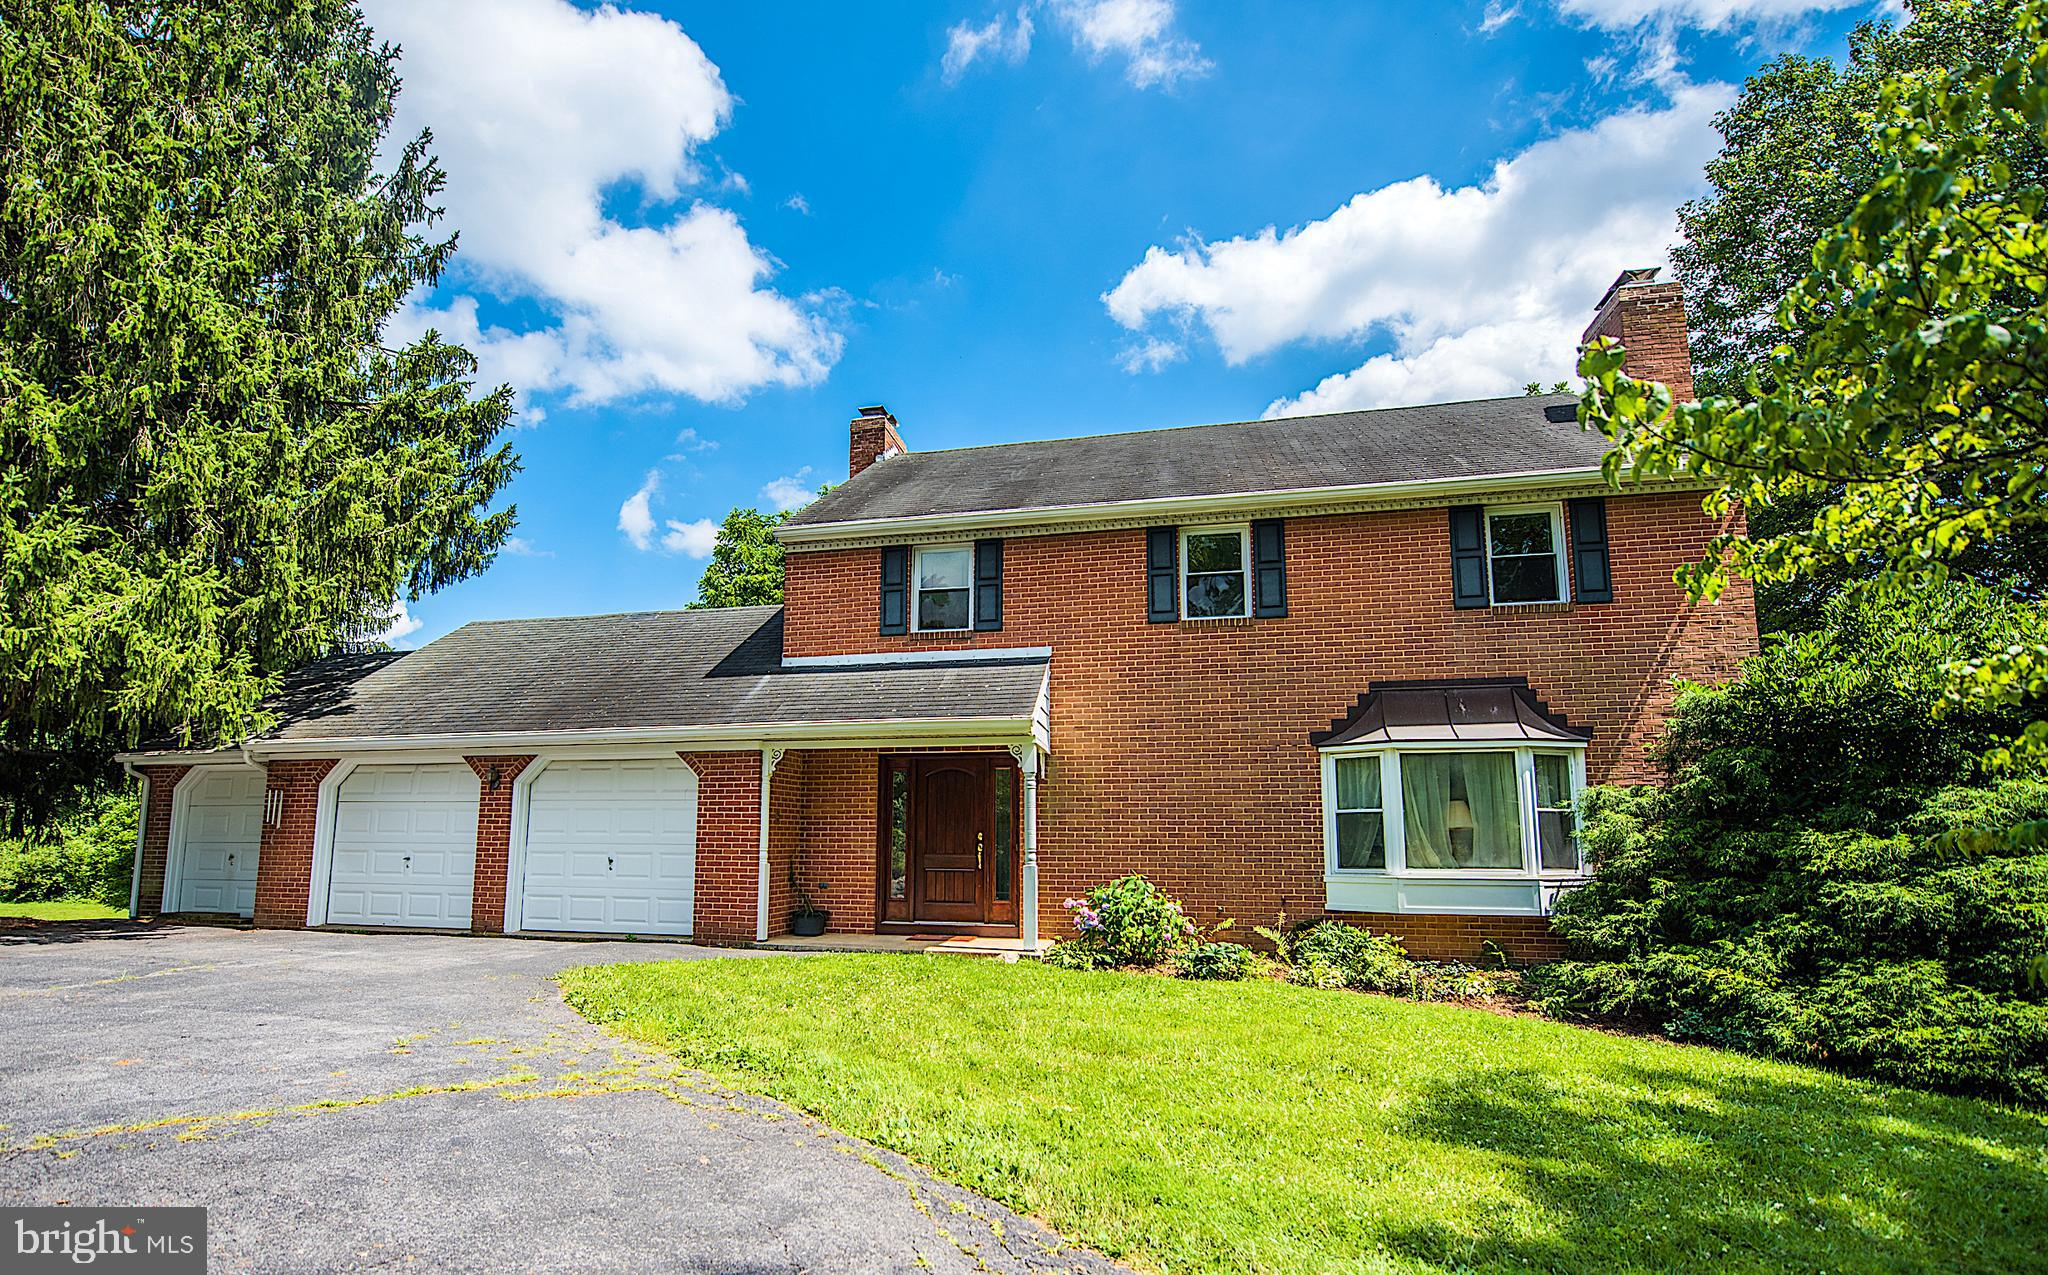 One of a kind 5 bedroom brick home with 3.5 baths set on a gorgeous acre lot. Show this beauty now!